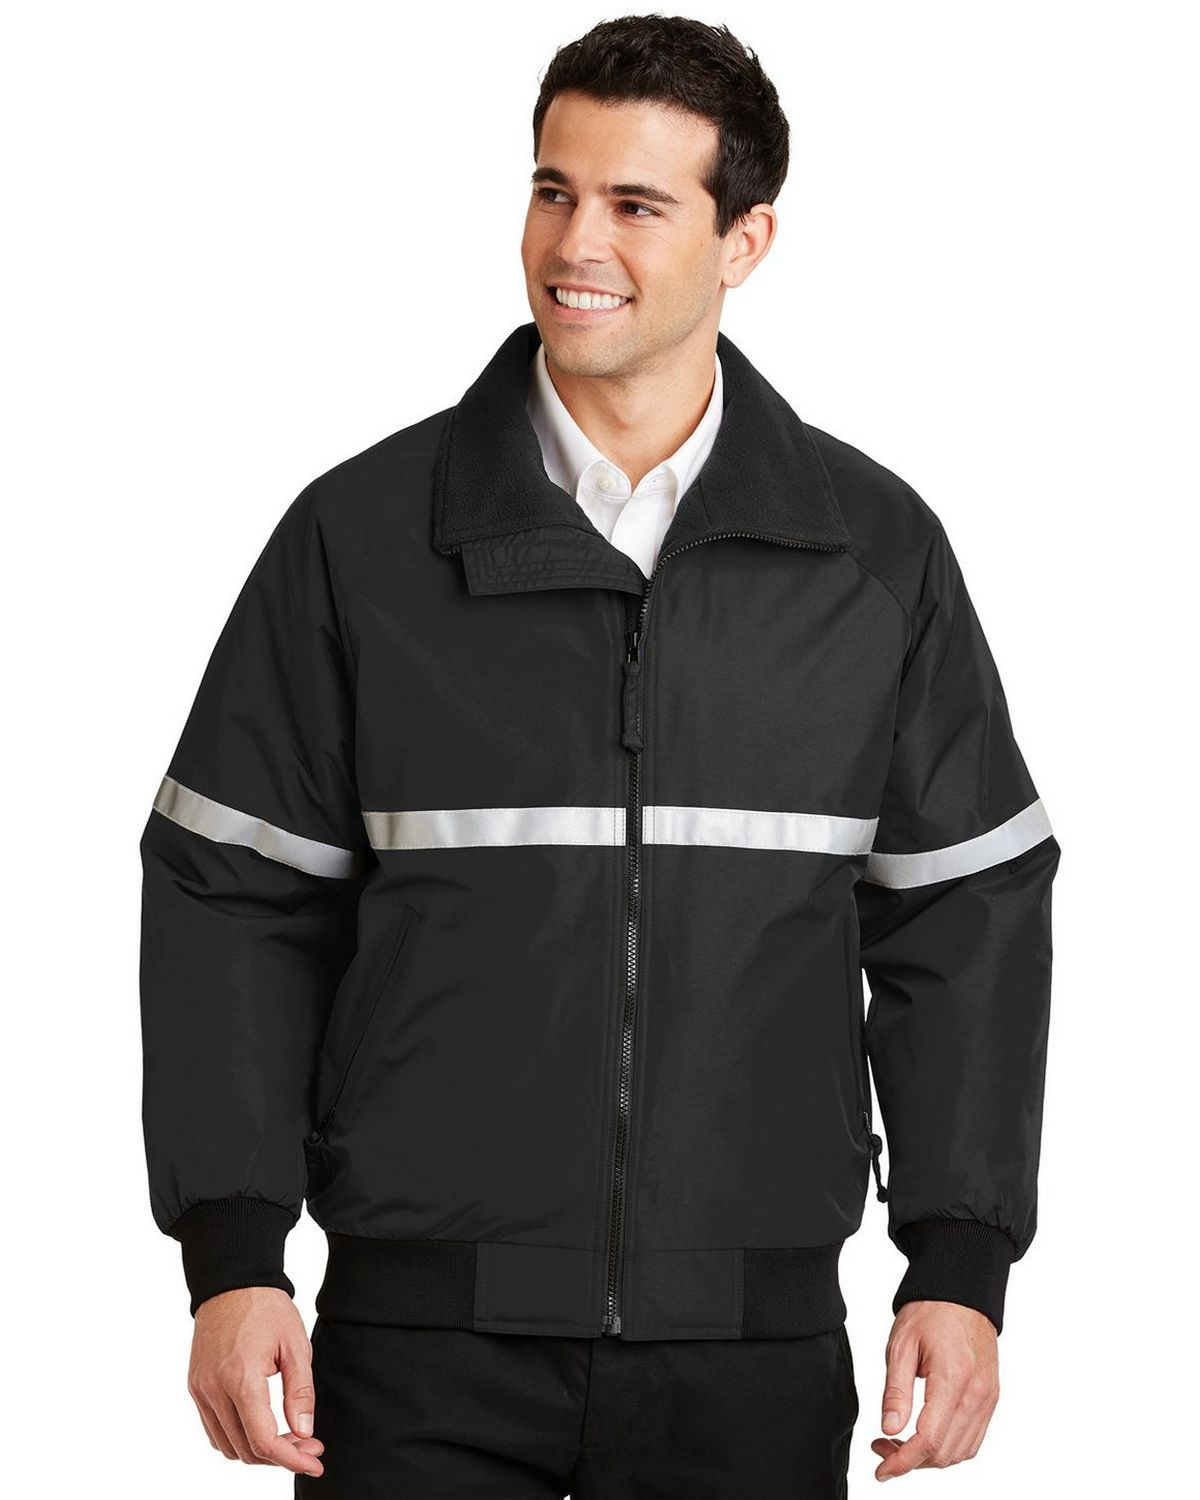 Port Authority J754R Challenger Jacket - True Black/True Black/Reflective - XL J754R